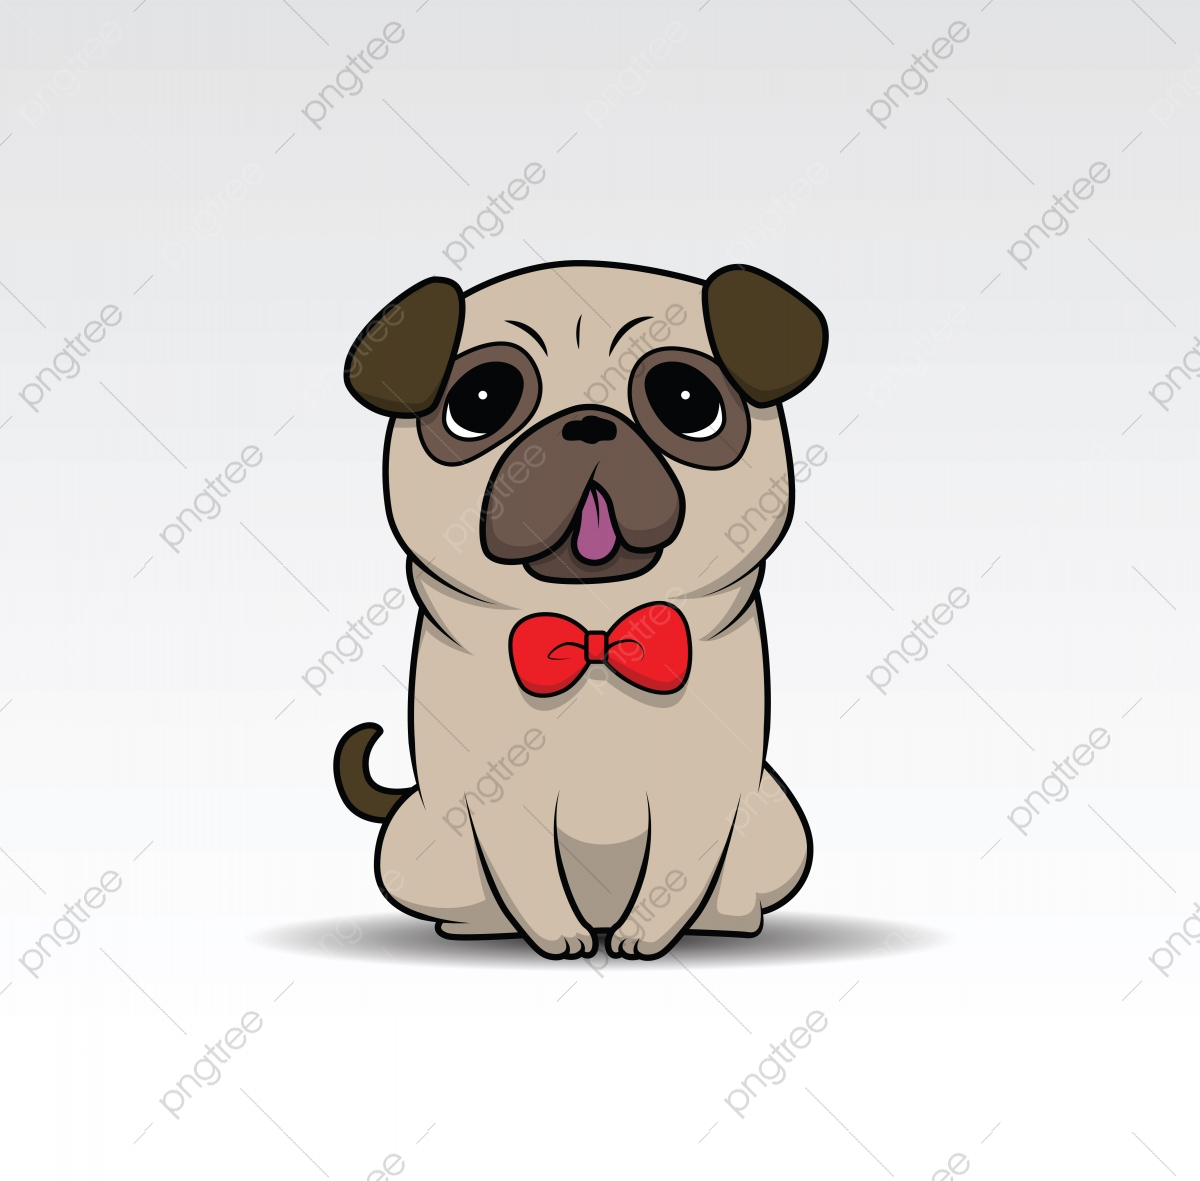 Cute Cartoon Dog Puppy For Design Element Cartoon Dog Adorable Png And Vector With Transparent Background For Free Download